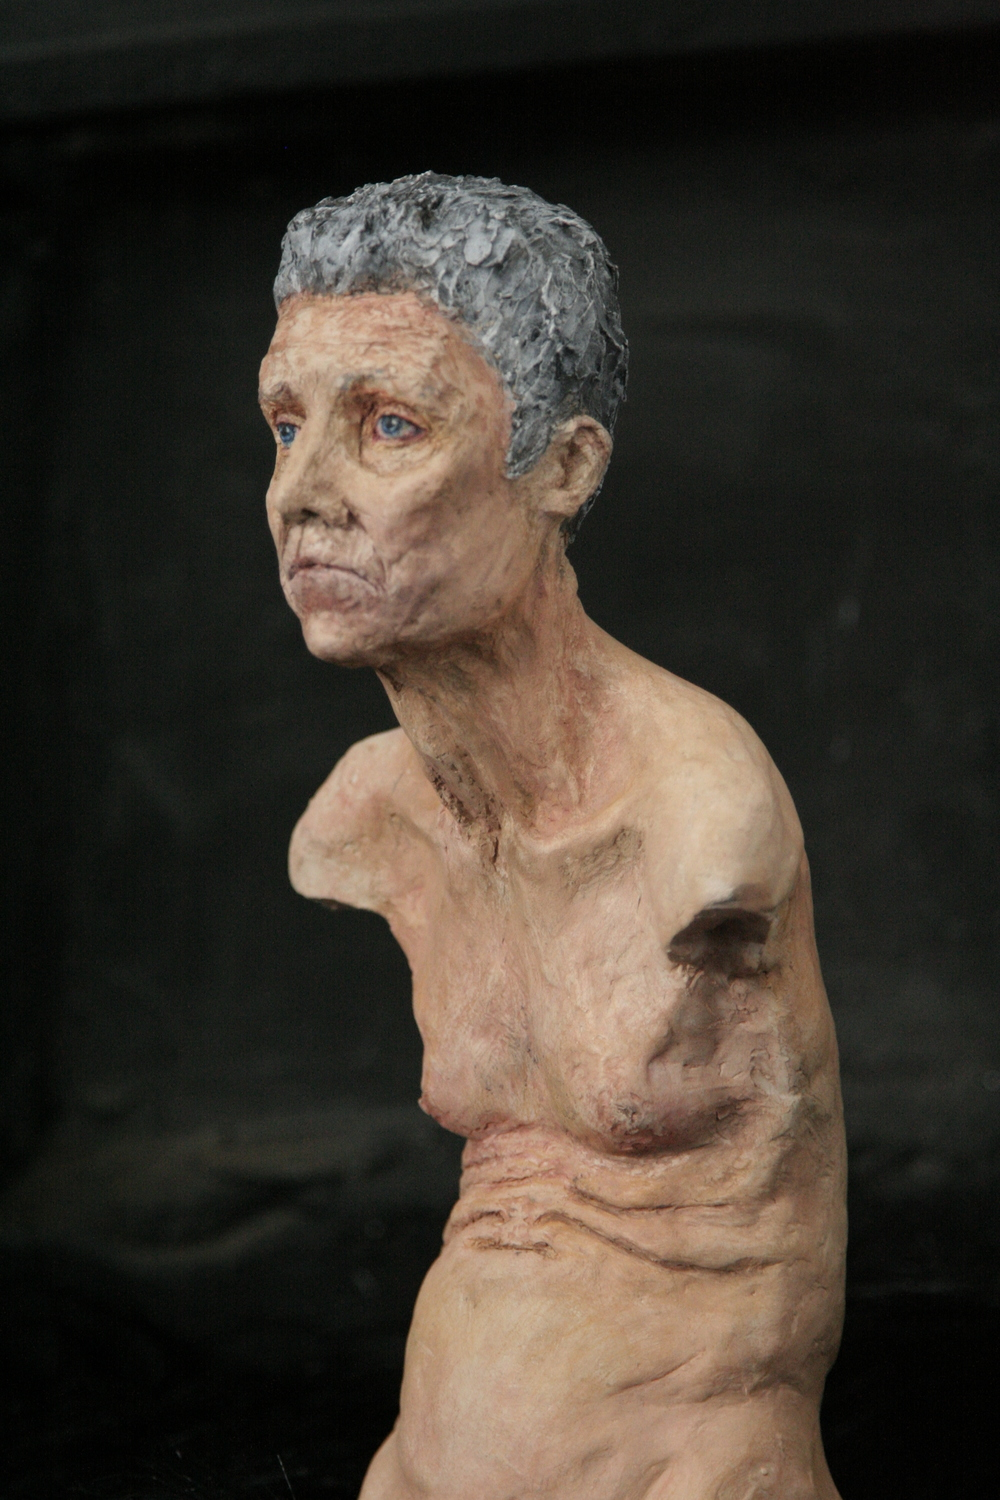 man-sculpture-olga-lunina.JPG